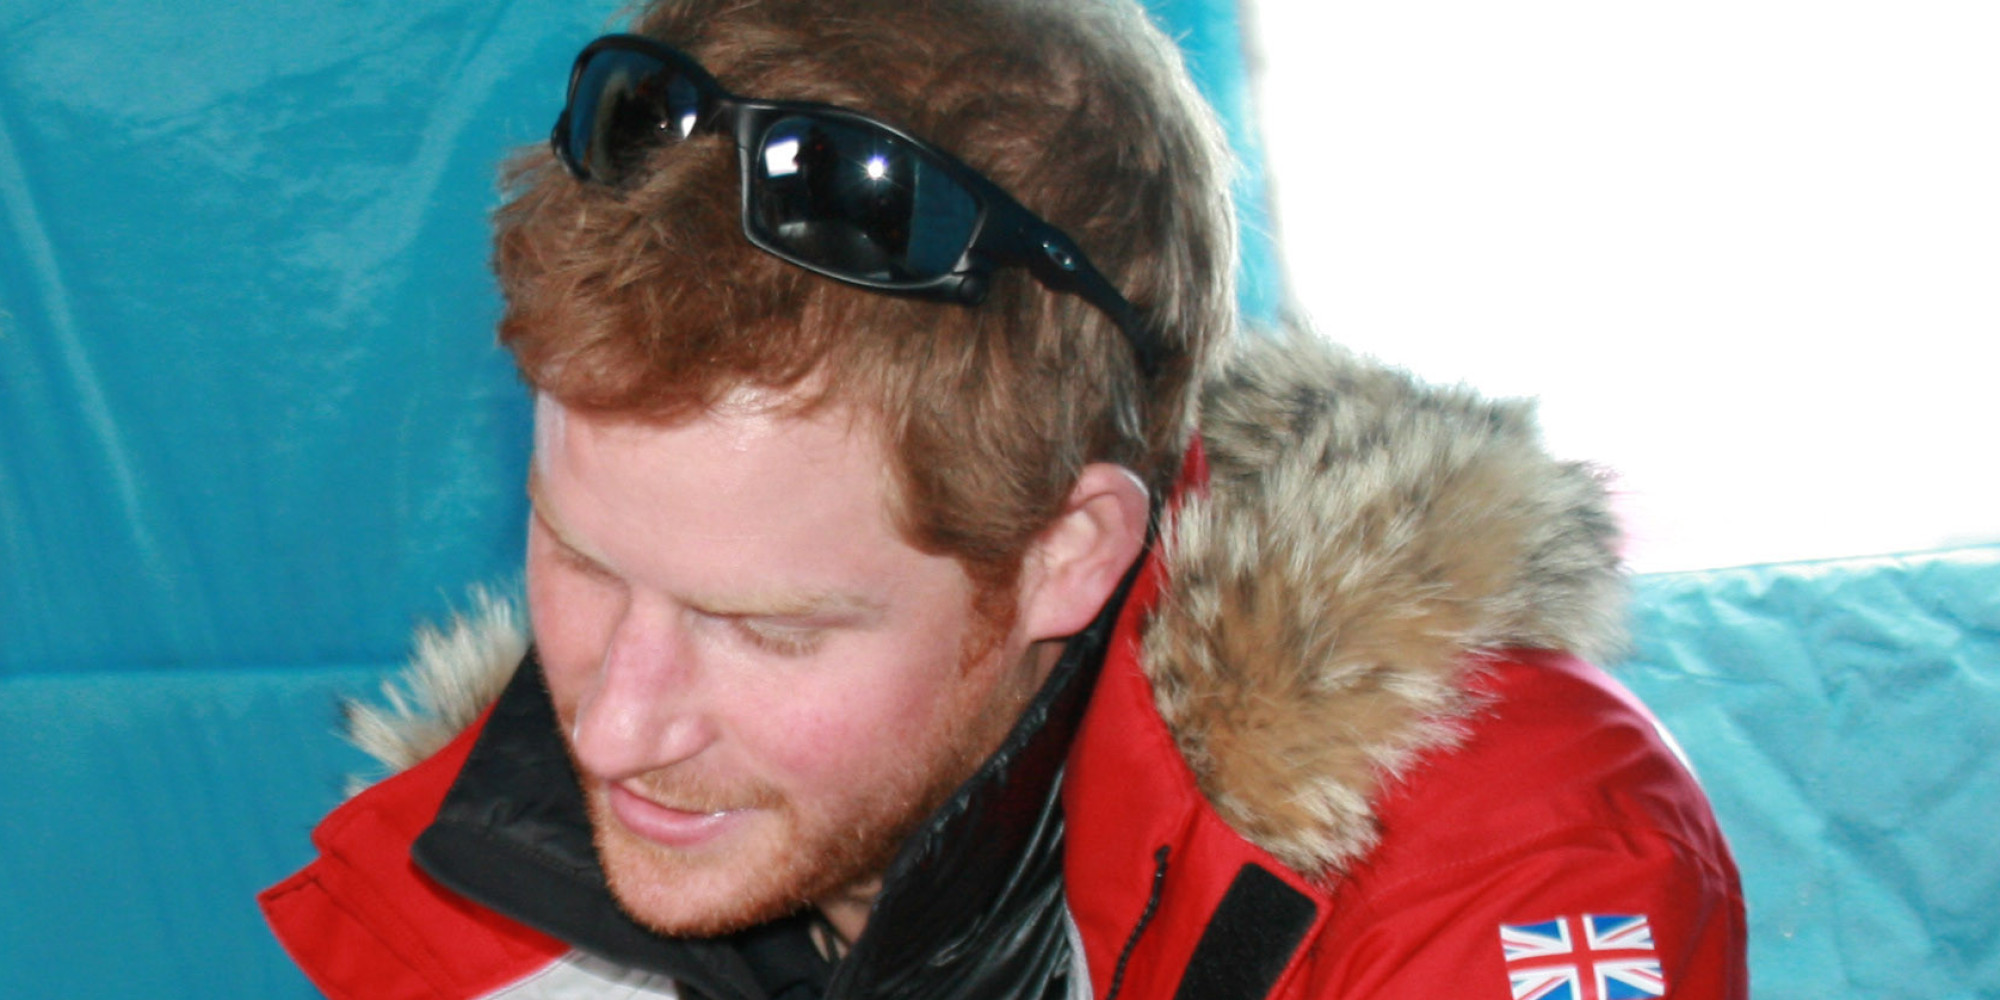 Prince Harrys Beard Comes Out In Full Force On South Pole